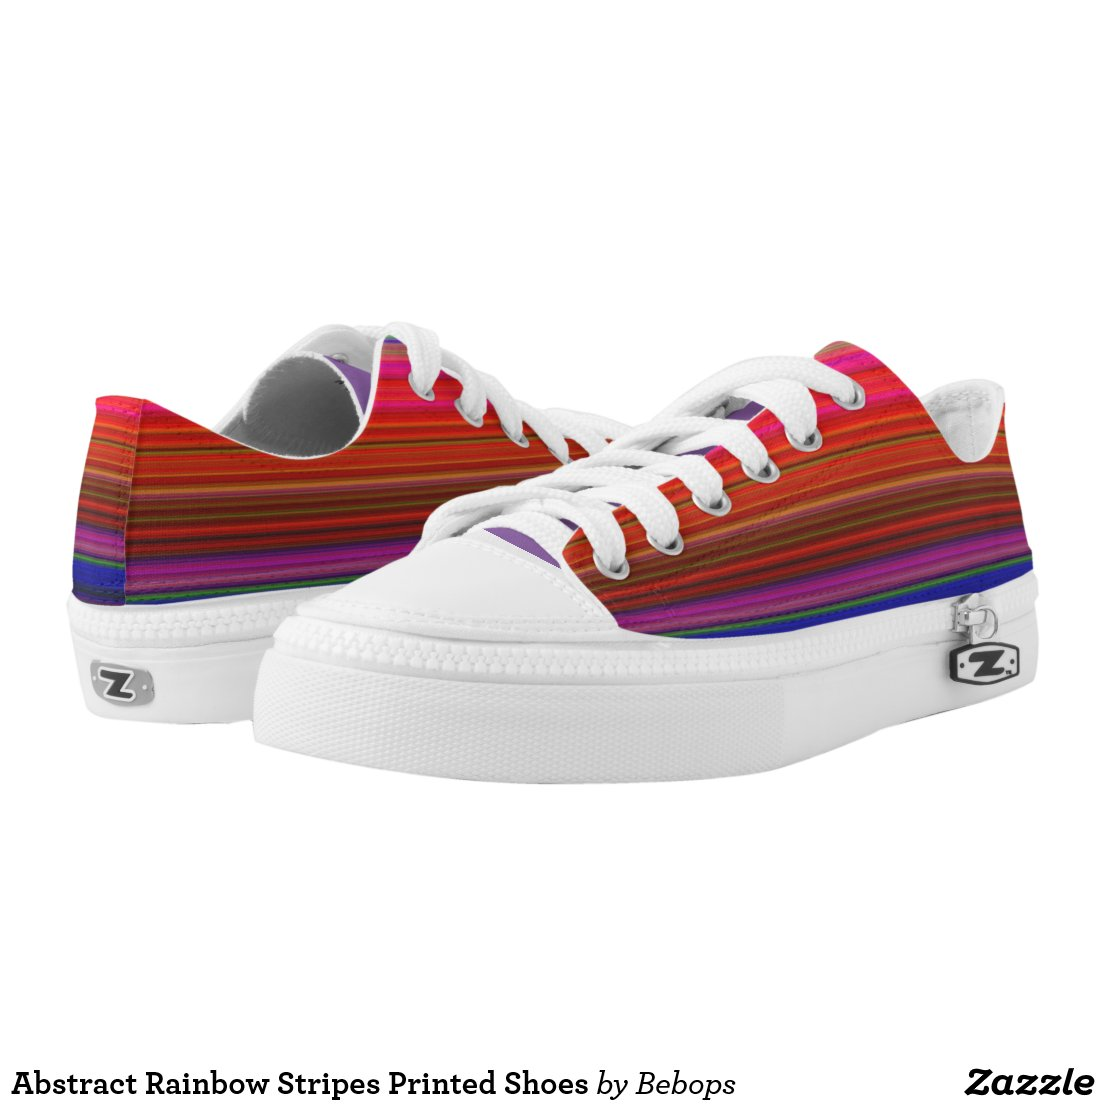 Abstract Rainbow Stripes Printed Shoes